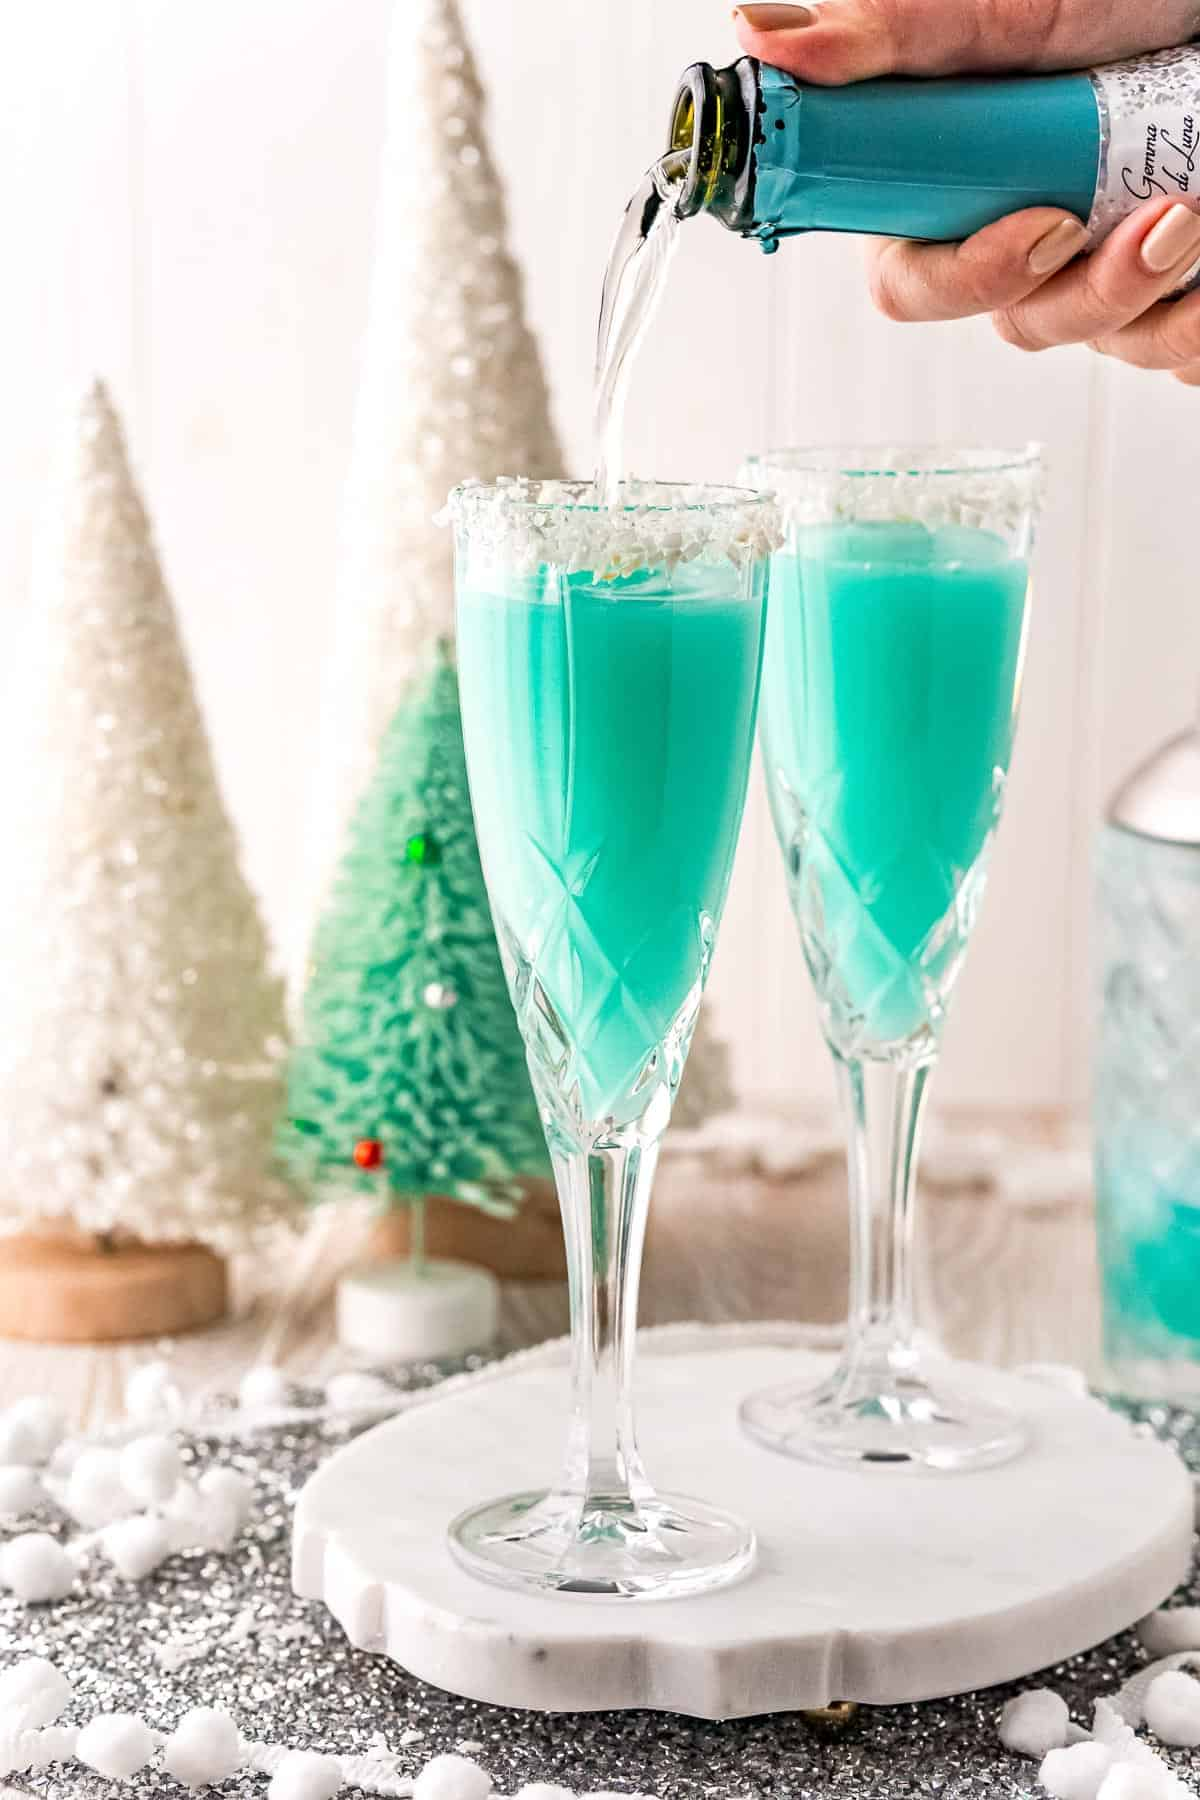 Prosecco being poured into a blue cocktail.